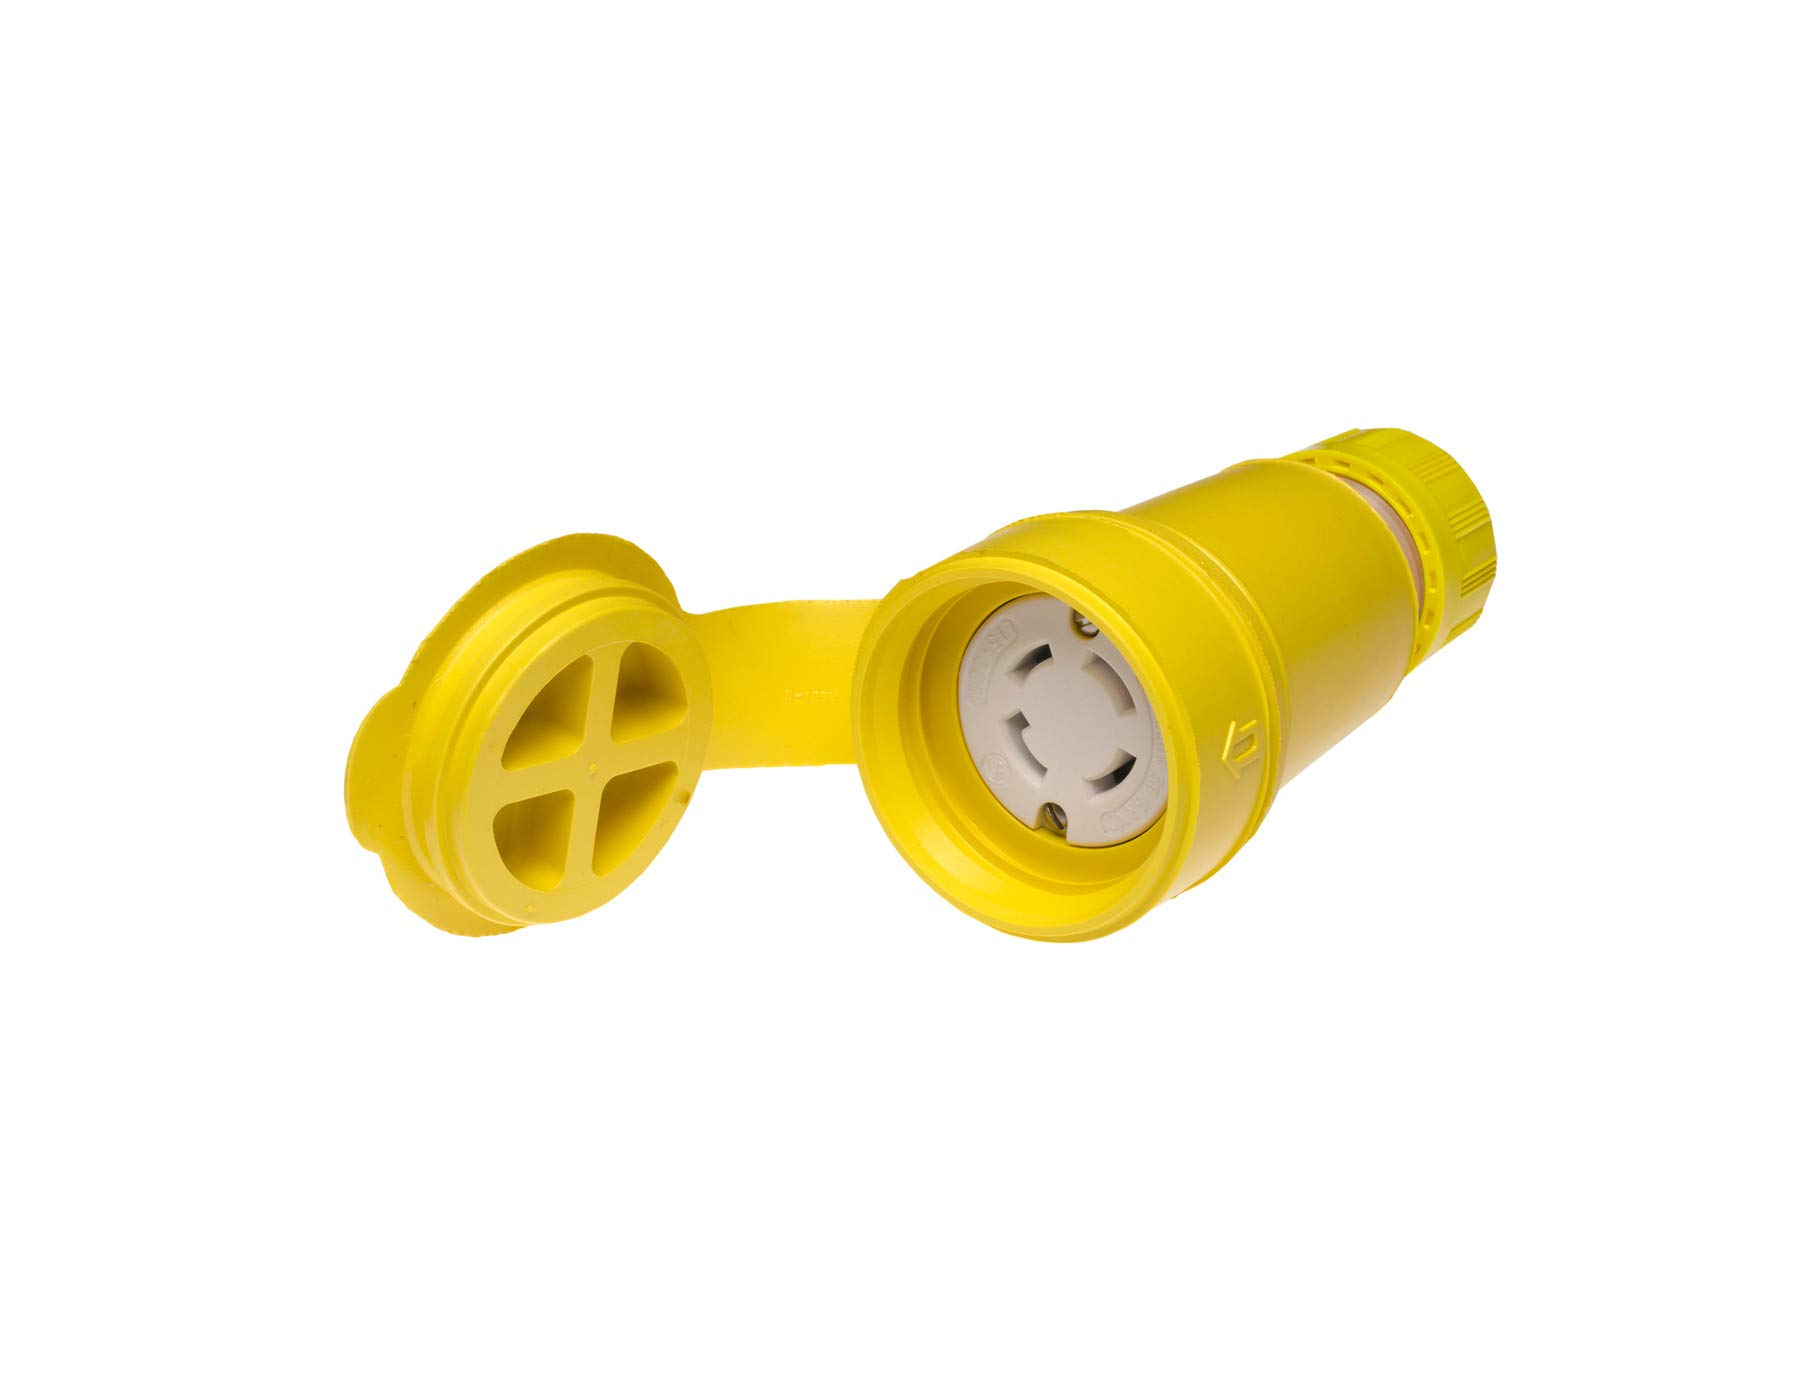 Woodhead 29W75 Watertite Wet Location Locking Blade Connector, 3-Phase, 4 Wires, 3 Poles, NEMA L15-30 Configuration, Yellow, 30A Current, 250V Voltage by Woodhead